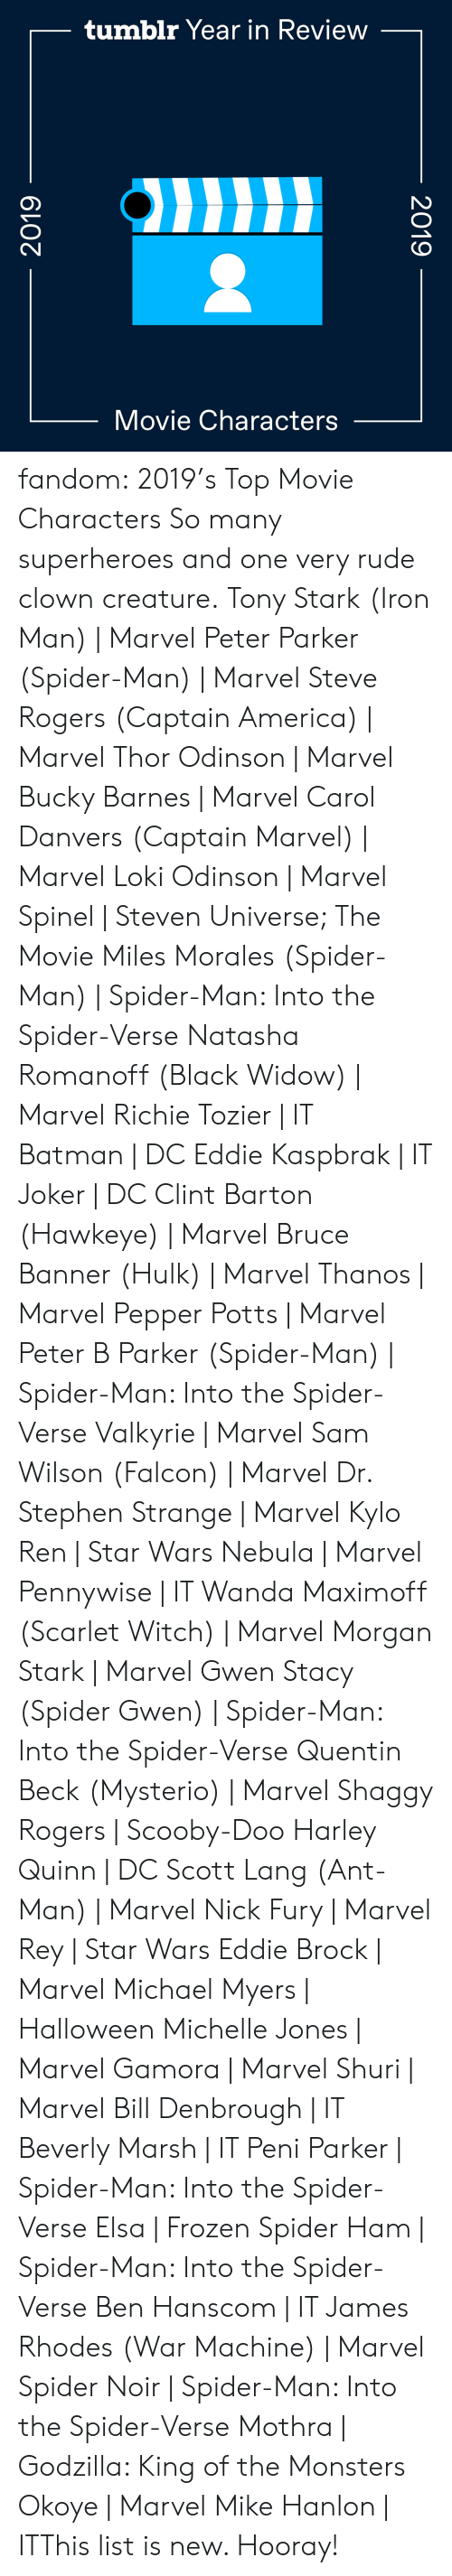 stark: tumblr Year in Review  Movie Characters  2019  2019 fandom:  2019's Top Movie Characters  So many superheroes and one very rude clown creature.  Tony Stark (Iron Man) | Marvel  Peter Parker (Spider-Man) | Marvel  Steve Rogers (Captain America) | Marvel  Thor Odinson | Marvel  Bucky Barnes | Marvel  Carol Danvers (Captain Marvel) | Marvel  Loki Odinson | Marvel  Spinel | Steven Universe; The Movie  Miles Morales (Spider-Man) | Spider-Man: Into the Spider-Verse  Natasha Romanoff (Black Widow) | Marvel  Richie Tozier | IT  Batman | DC  Eddie Kaspbrak | IT  Joker | DC  Clint Barton (Hawkeye) | Marvel  Bruce Banner (Hulk) | Marvel  Thanos | Marvel  Pepper Potts | Marvel  Peter B Parker (Spider-Man) | Spider-Man: Into the Spider-Verse  Valkyrie | Marvel  Sam Wilson (Falcon) | Marvel  Dr. Stephen Strange | Marvel  Kylo Ren | Star Wars  Nebula | Marvel  Pennywise | IT  Wanda Maximoff (Scarlet Witch) | Marvel  Morgan Stark | Marvel  Gwen Stacy (Spider Gwen) | Spider-Man: Into the Spider-Verse  Quentin Beck (Mysterio) | Marvel  Shaggy Rogers | Scooby-Doo  Harley Quinn | DC  Scott Lang (Ant-Man) | Marvel  Nick Fury | Marvel  Rey | Star Wars  Eddie Brock | Marvel  Michael Myers | Halloween  Michelle Jones | Marvel  Gamora | Marvel  Shuri | Marvel  Bill Denbrough | IT  Beverly Marsh | IT  Peni Parker | Spider-Man: Into the Spider-Verse  Elsa | Frozen  Spider Ham | Spider-Man: Into the Spider-Verse  Ben Hanscom | IT  James Rhodes (War Machine) | Marvel  Spider Noir | Spider-Man: Into the Spider-Verse  Mothra | Godzilla: King of the Monsters  Okoye | Marvel Mike Hanlon | ITThis list is new. Hooray!